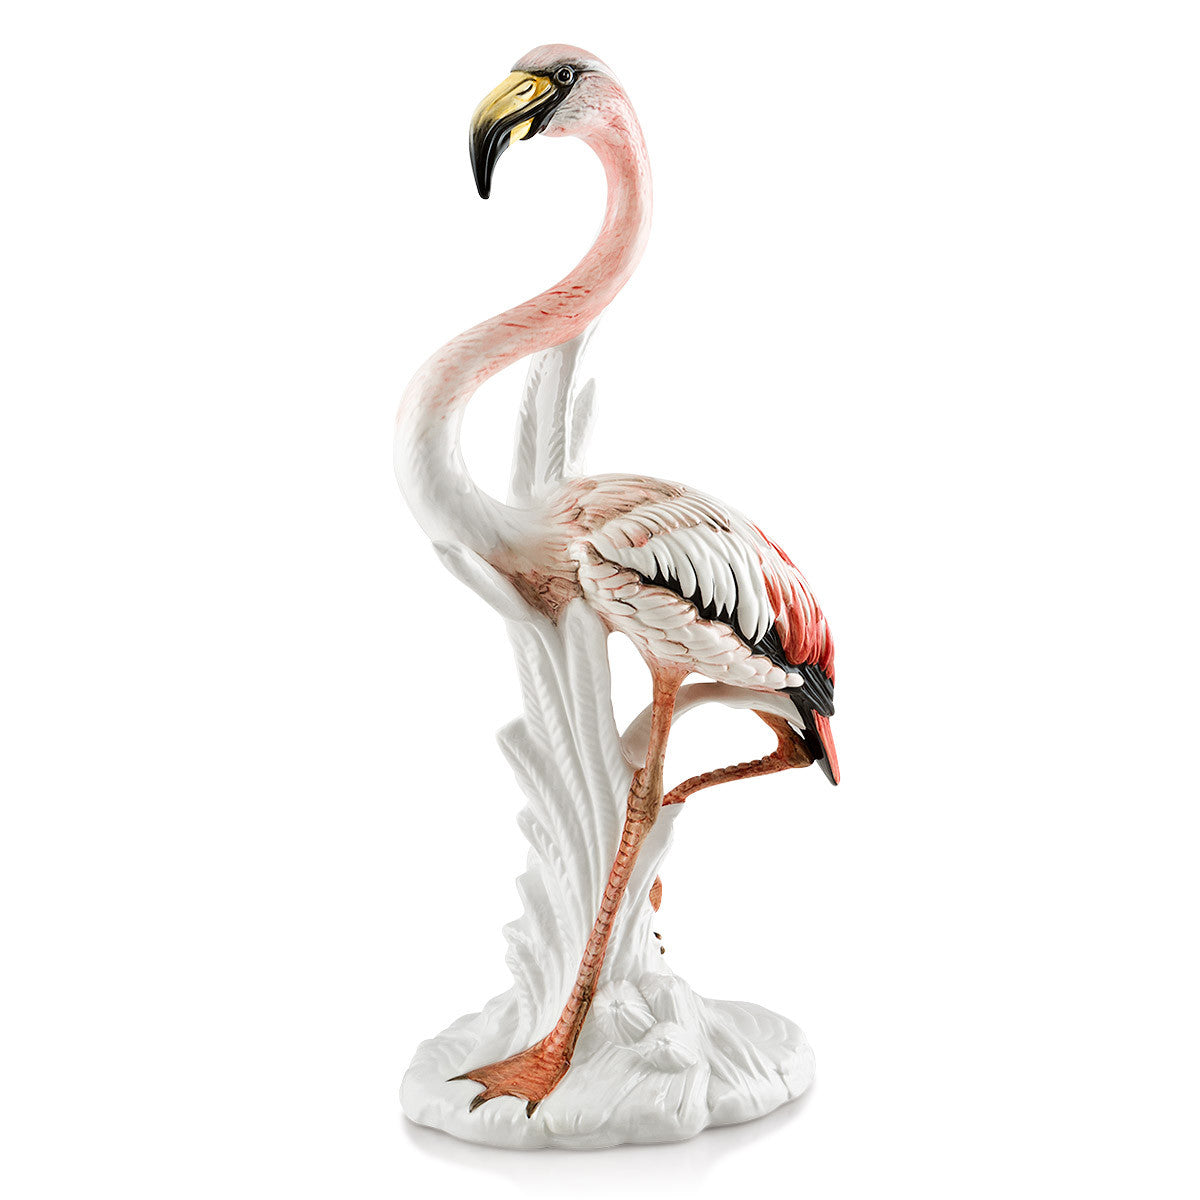 Ceramic big pink flamingo statue with life-like details